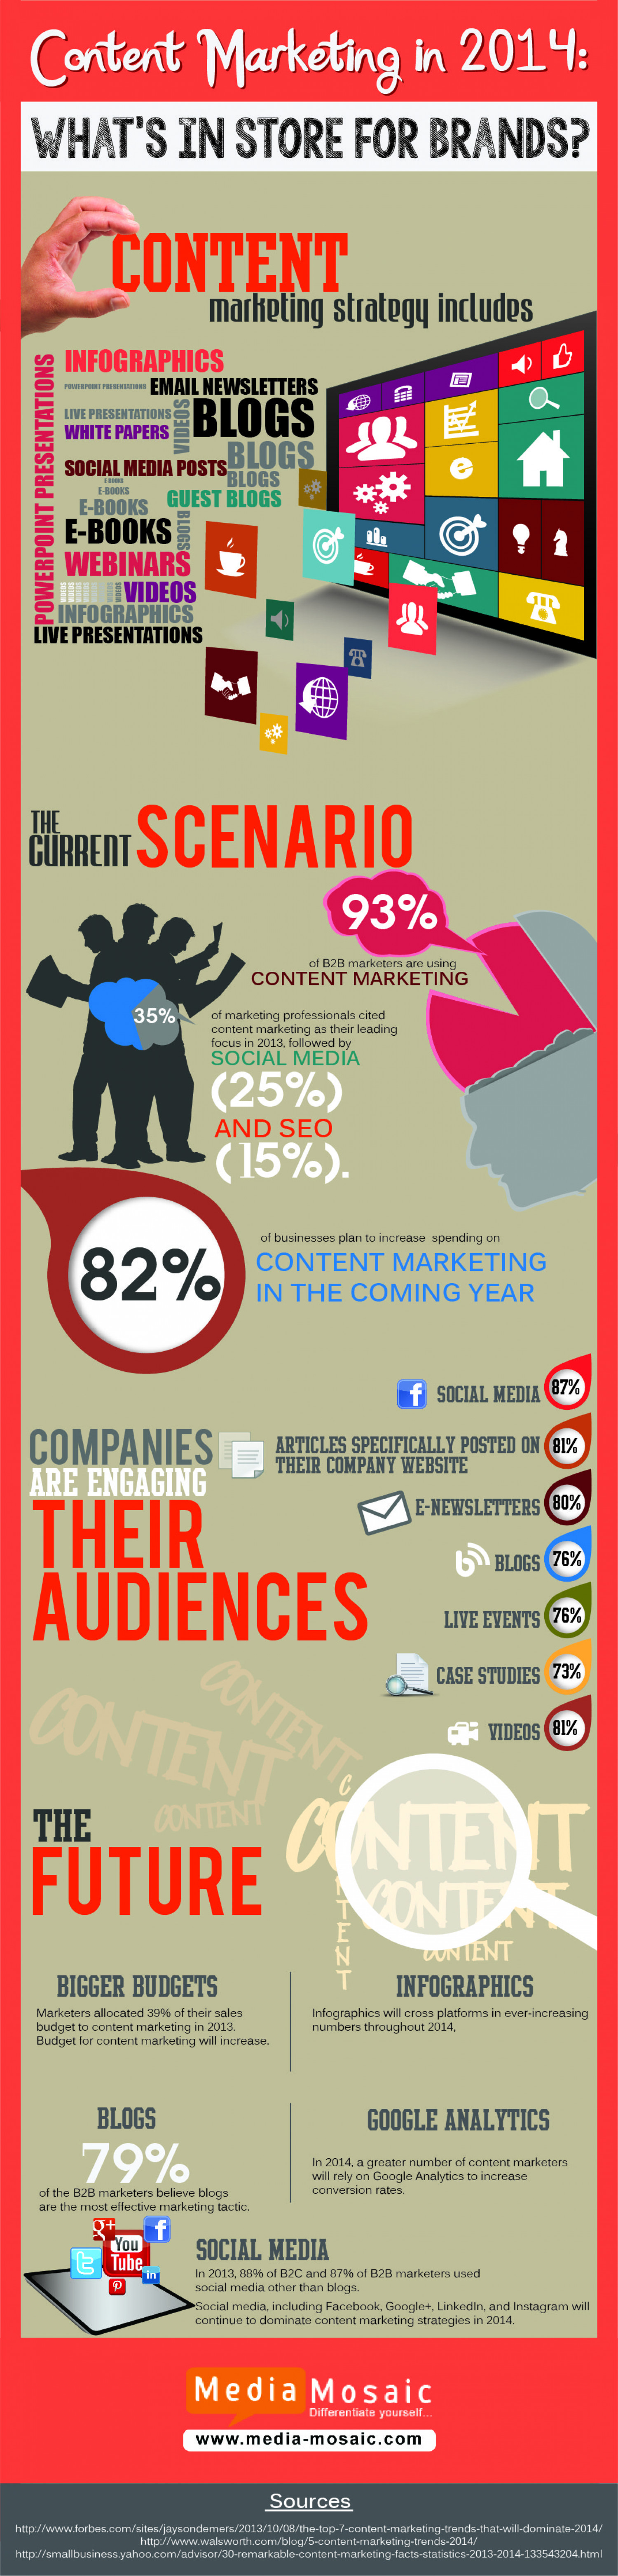 Content Marketing In 2014: What's In Store For Brands? Infographic